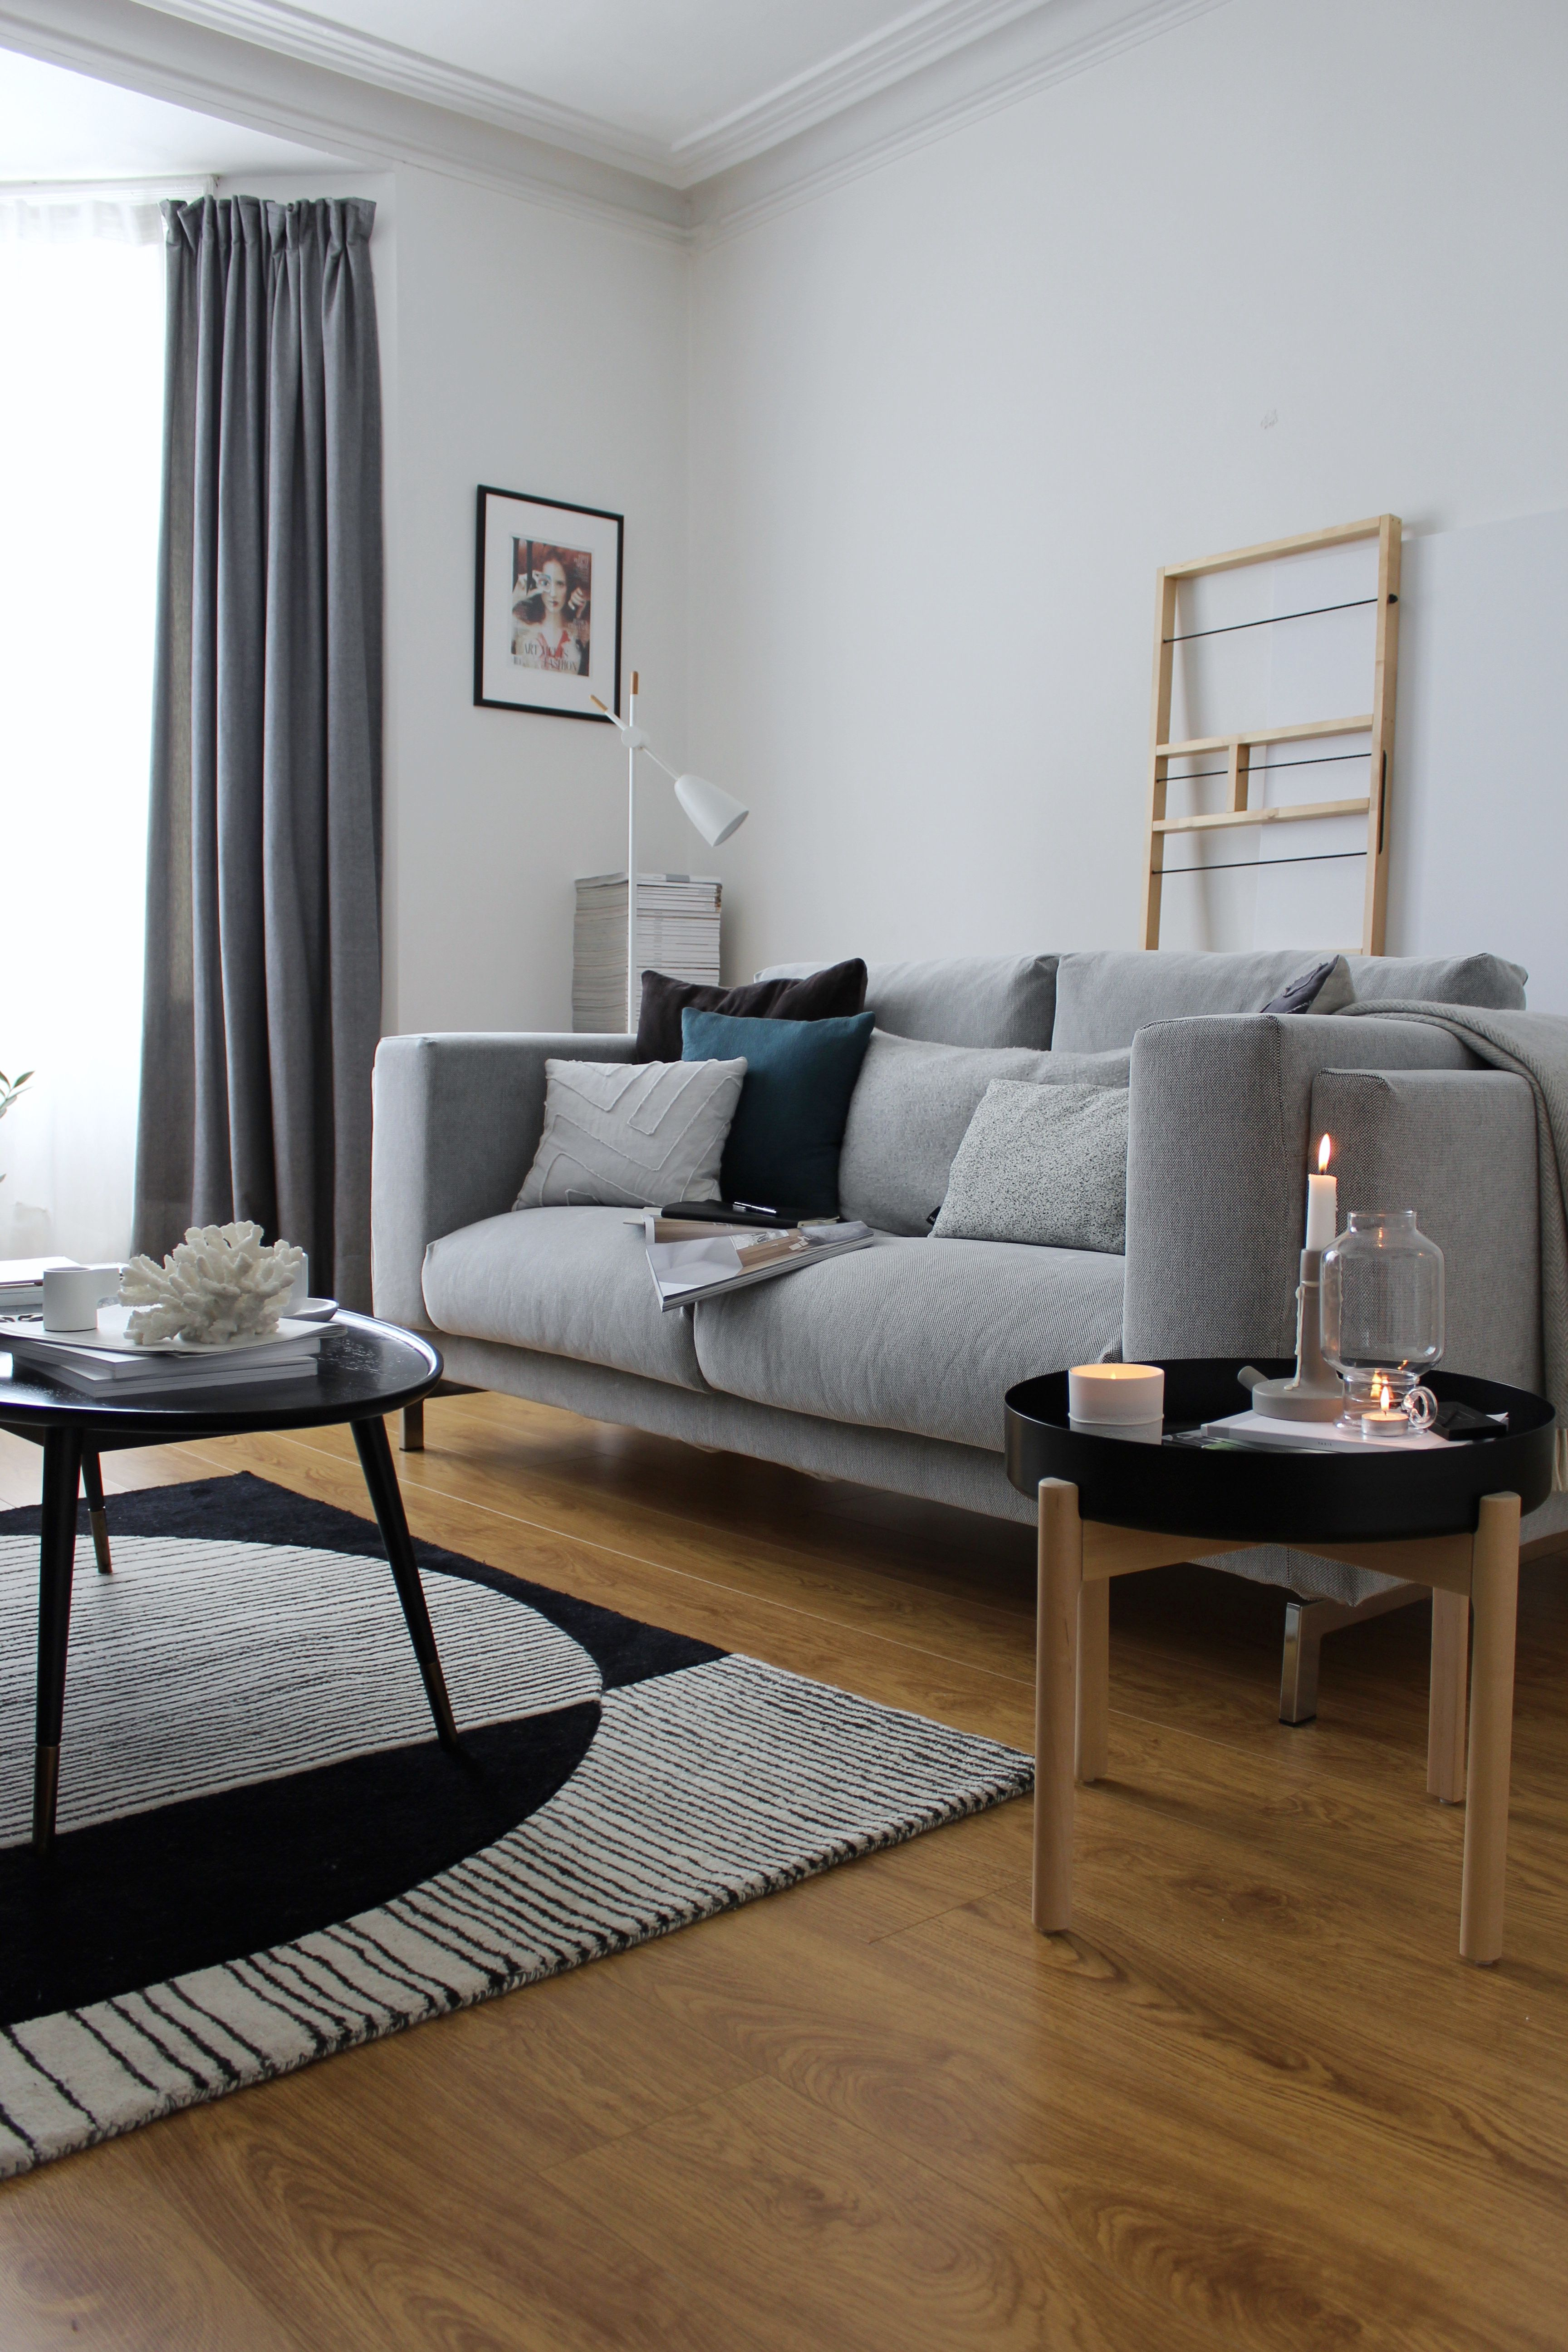 A living room update featuring ikeas nockeby sofa ypperlig a living room update featuring ikeas nockeby sofa ypperlig range parisarafo Image collections